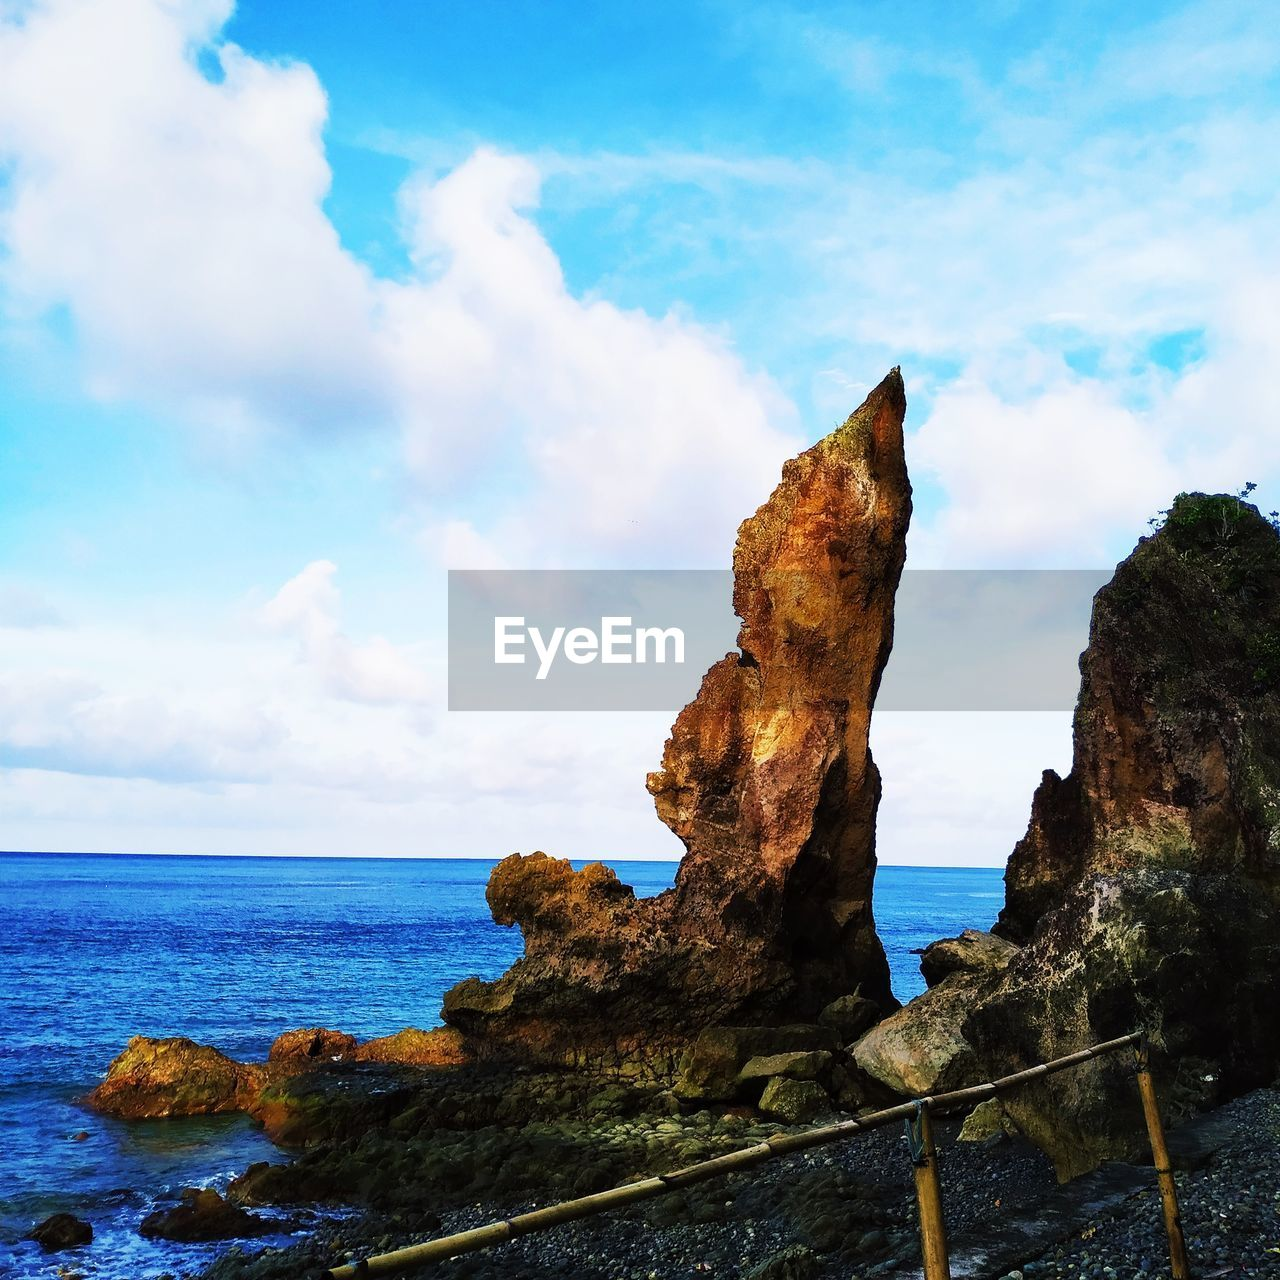 sky, sea, cloud - sky, water, beauty in nature, scenics - nature, nature, horizon over water, tranquility, tranquil scene, no people, horizon, rock, land, rock - object, day, solid, non-urban scene, beach, outdoors, eroded